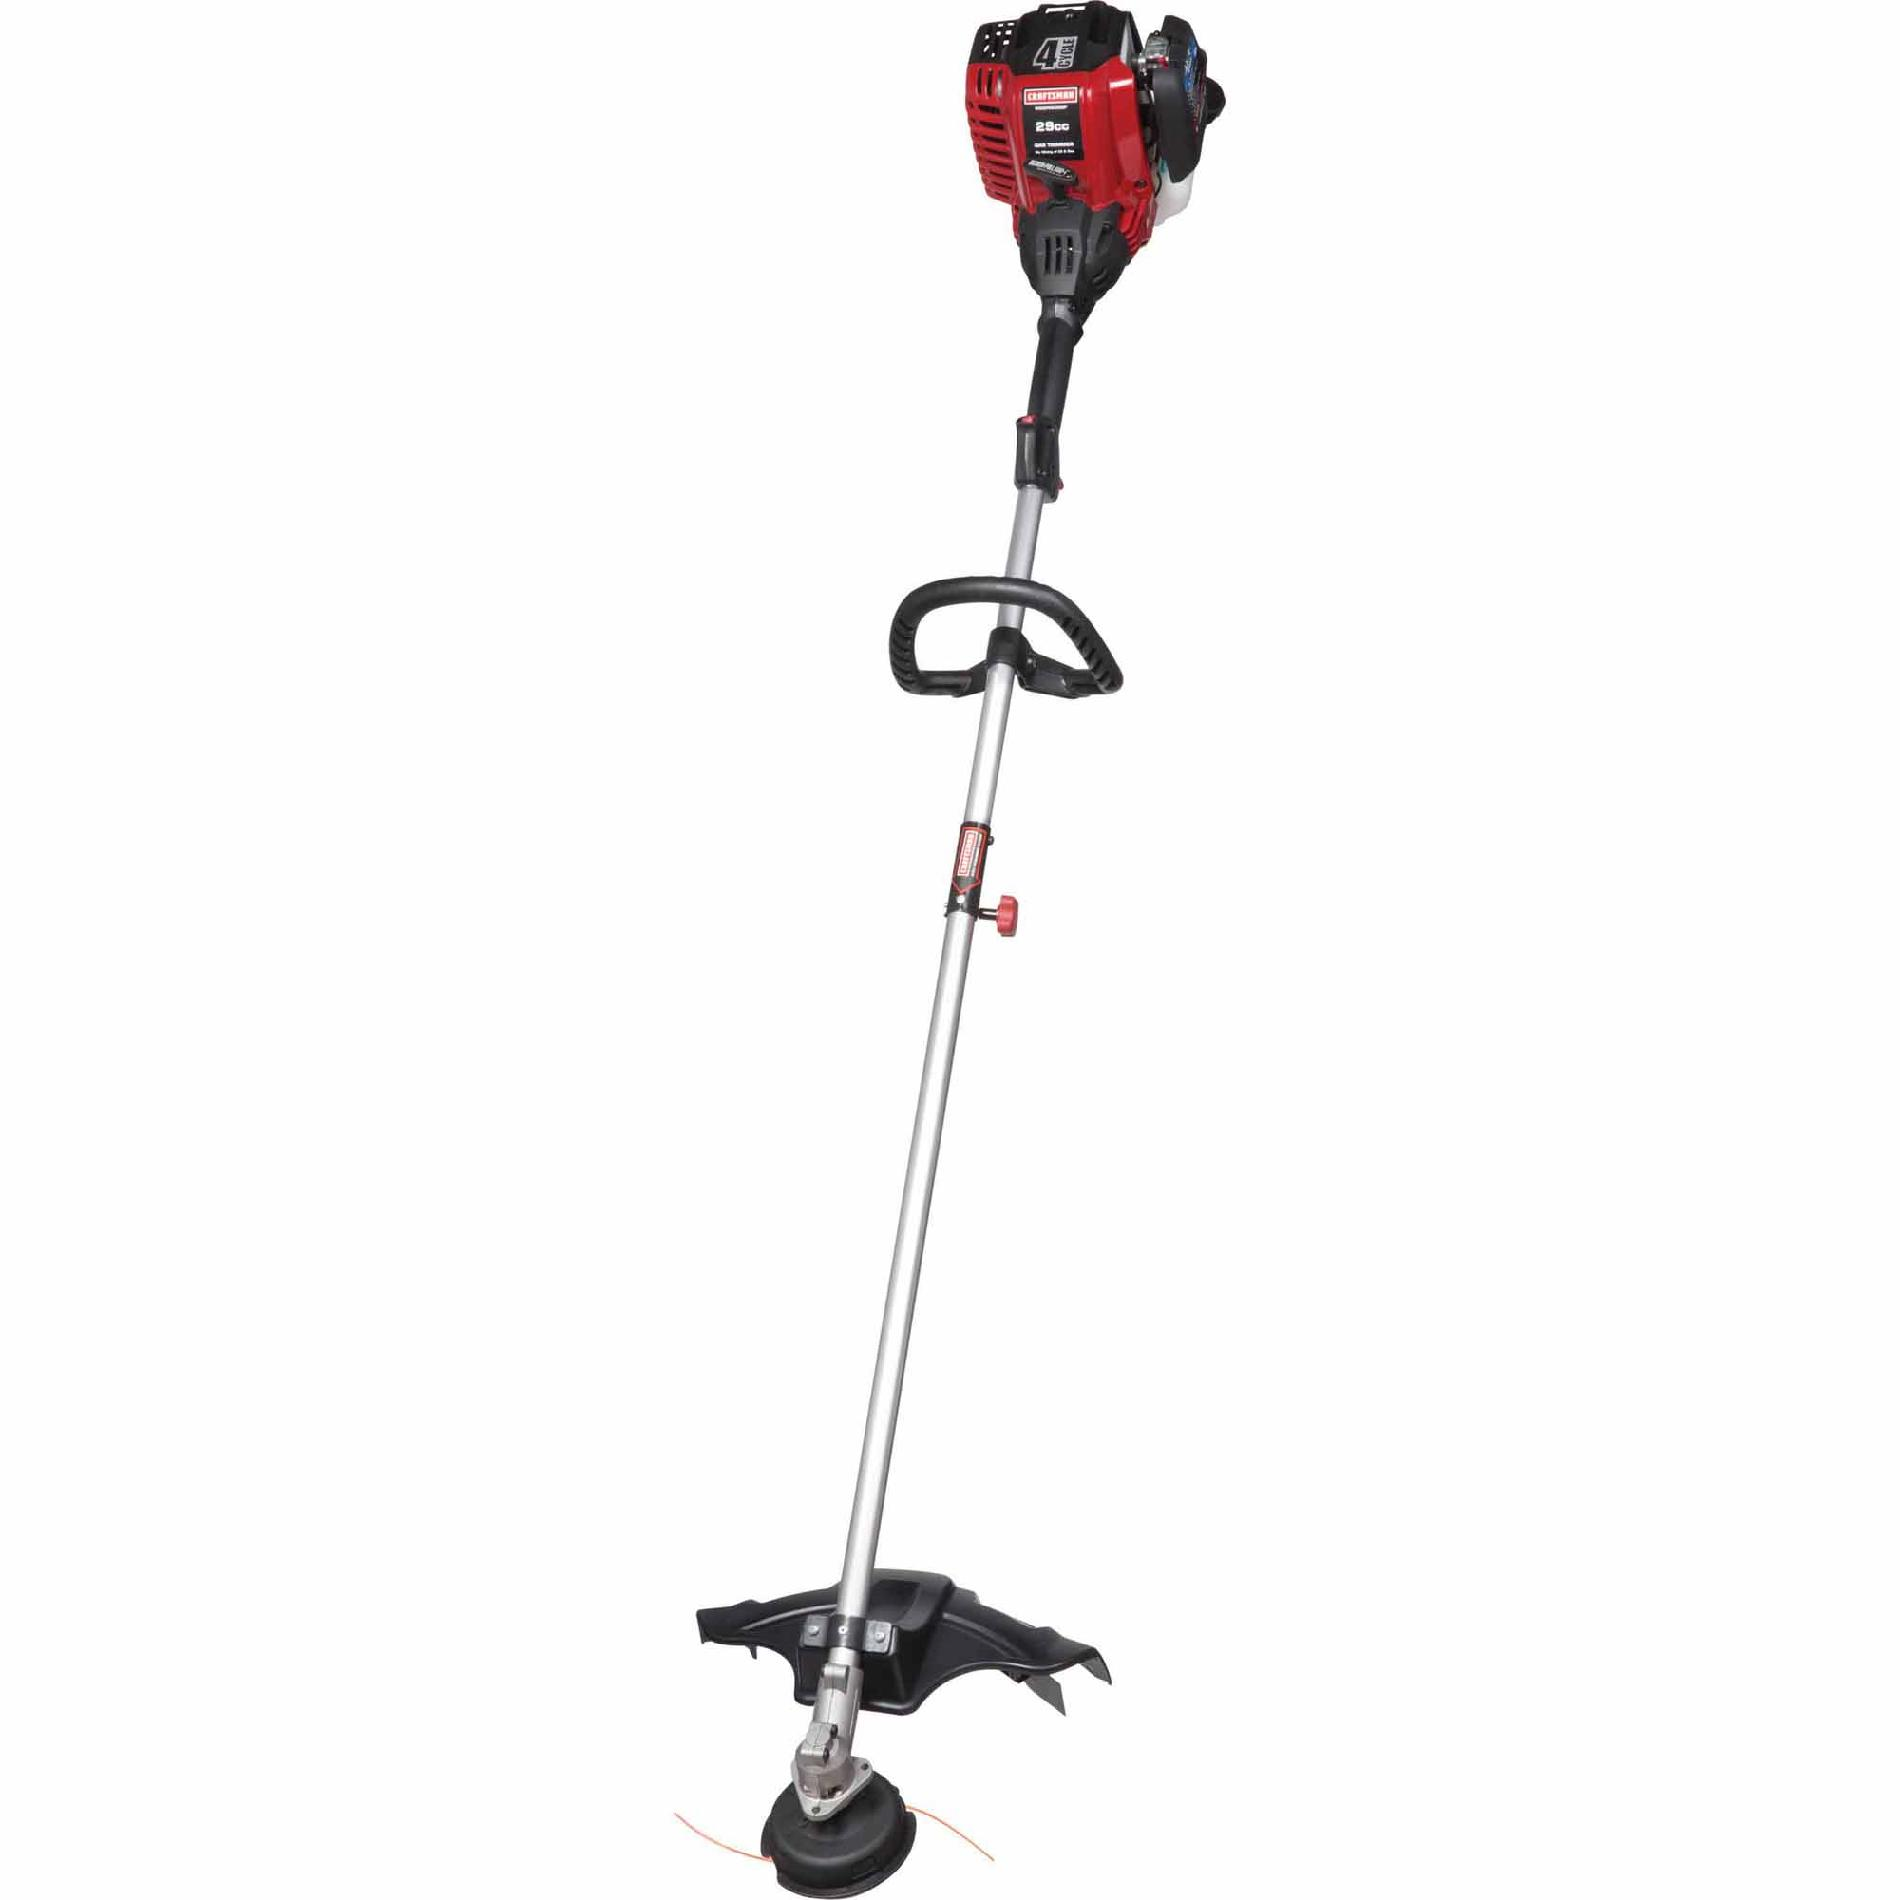 29cc 4-Cycle Straight Shaft Weedwacker Gas Trimmer